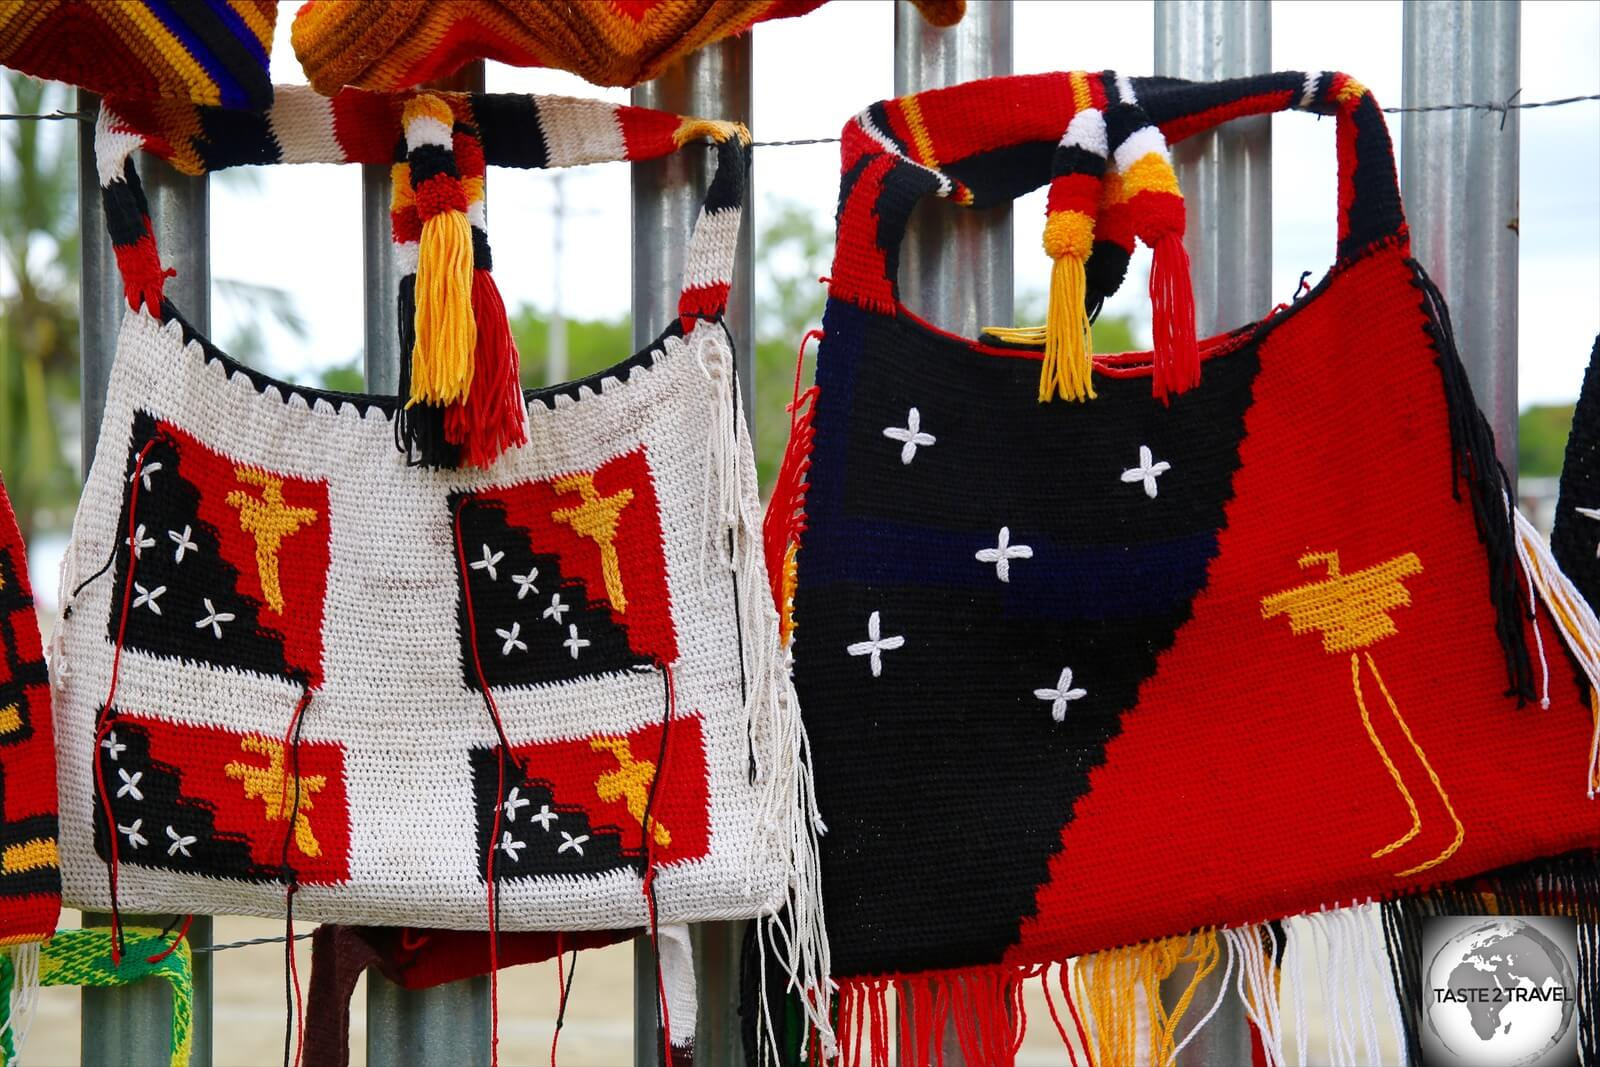 The flag of PNG is often featured in souvenirs such as these Bilums (bags) in Madang market.